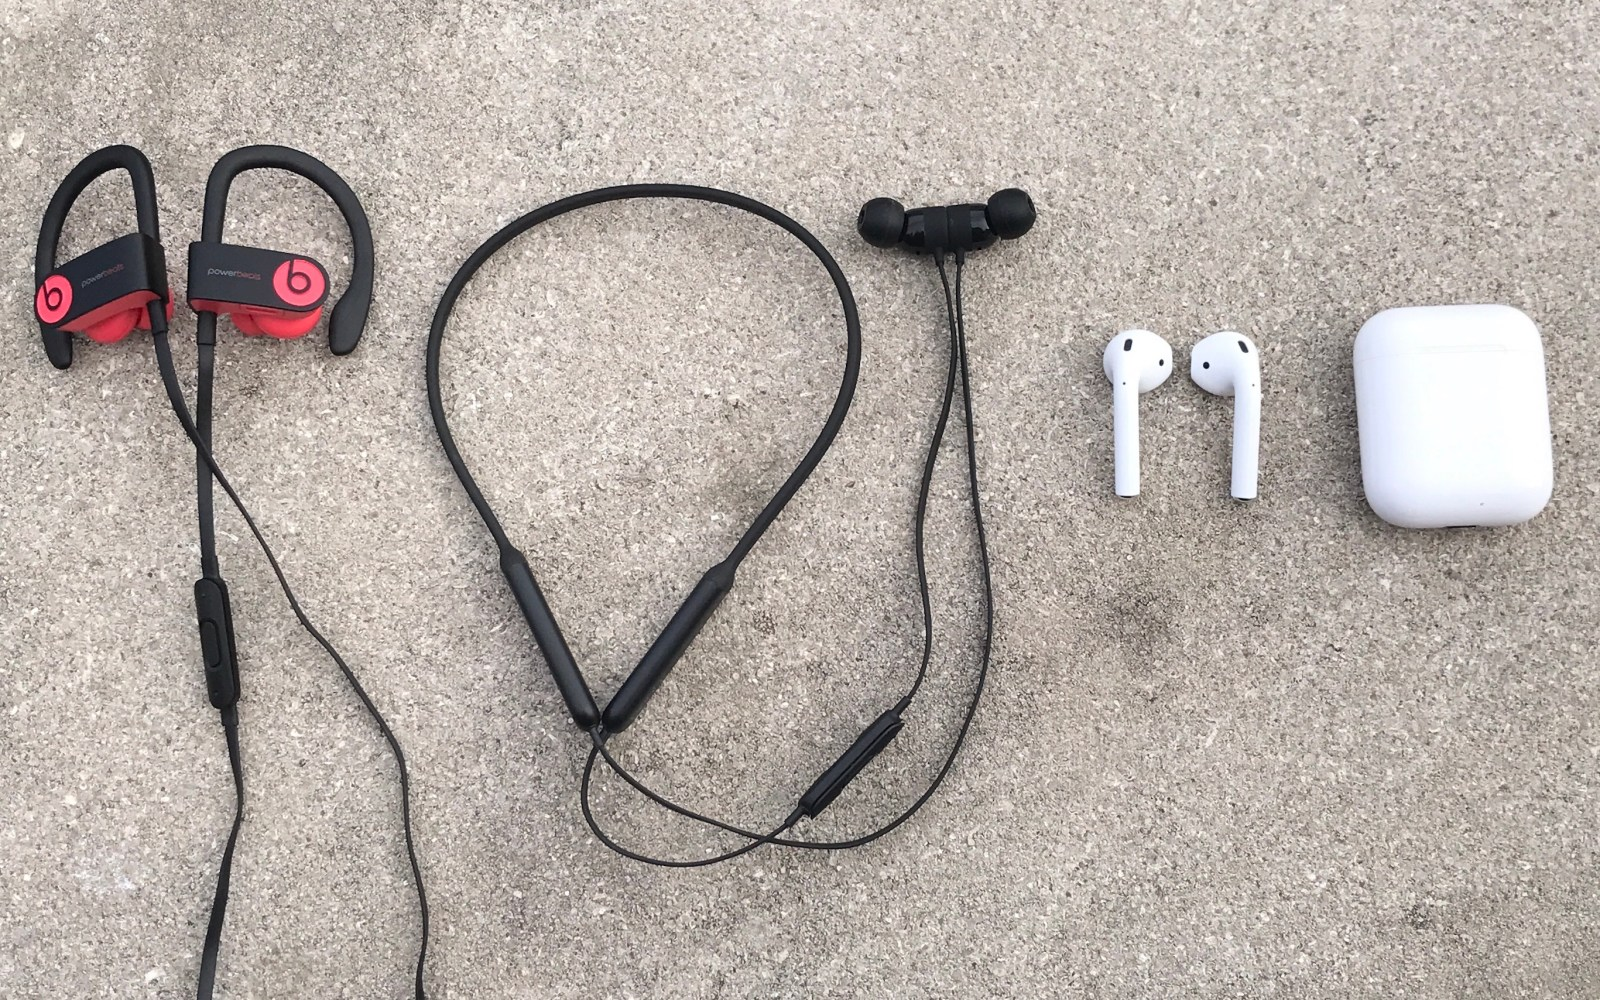 A week with BeatsX: How Apple's latest W1 earbuds compare to AirPods & Powerbeats3